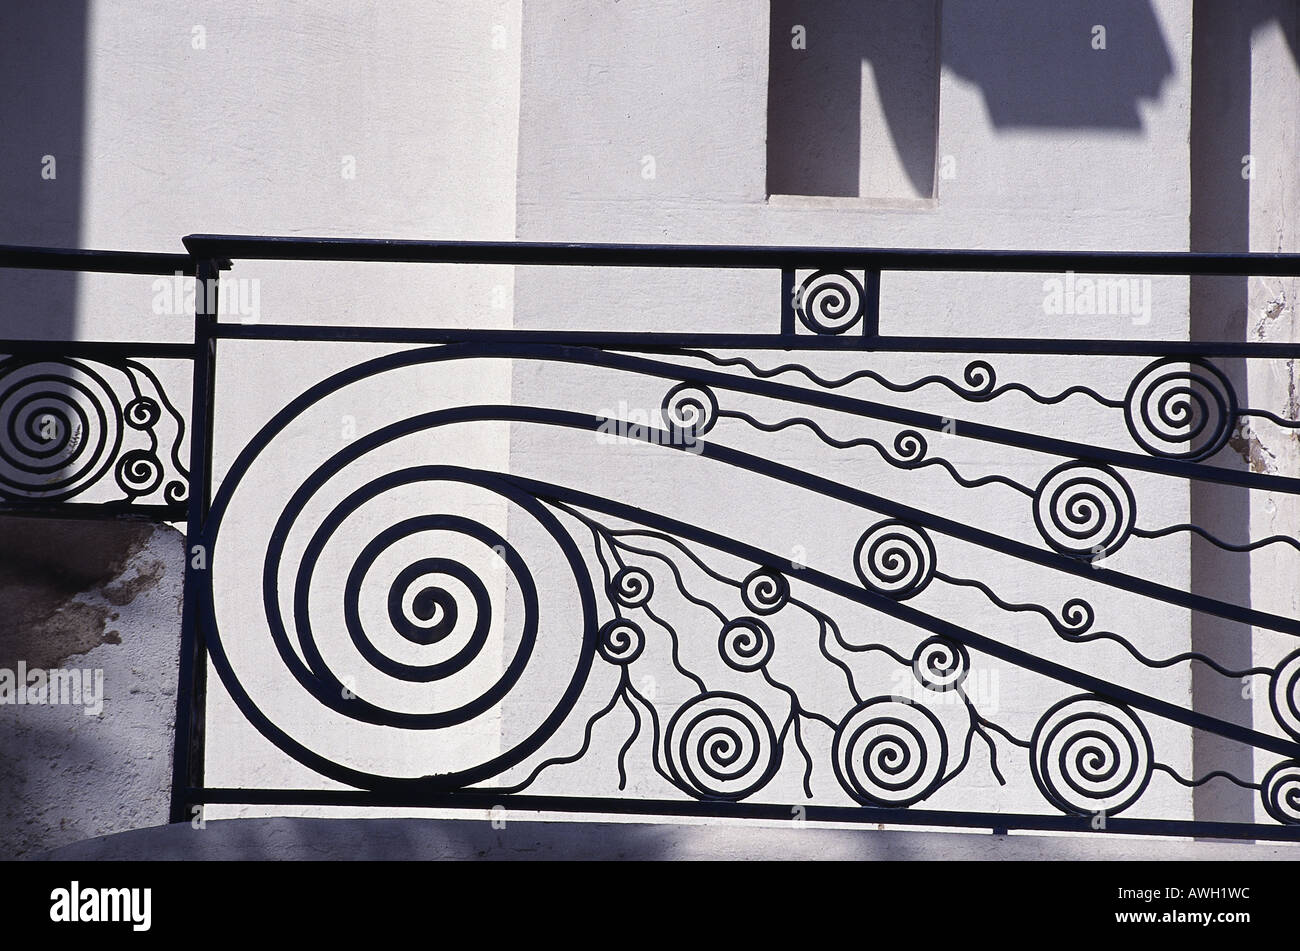 Morocco, Casablanca, Darius Boyer House, typical Art Nouveau wrought-ironwork balcony, detail - Stock Image